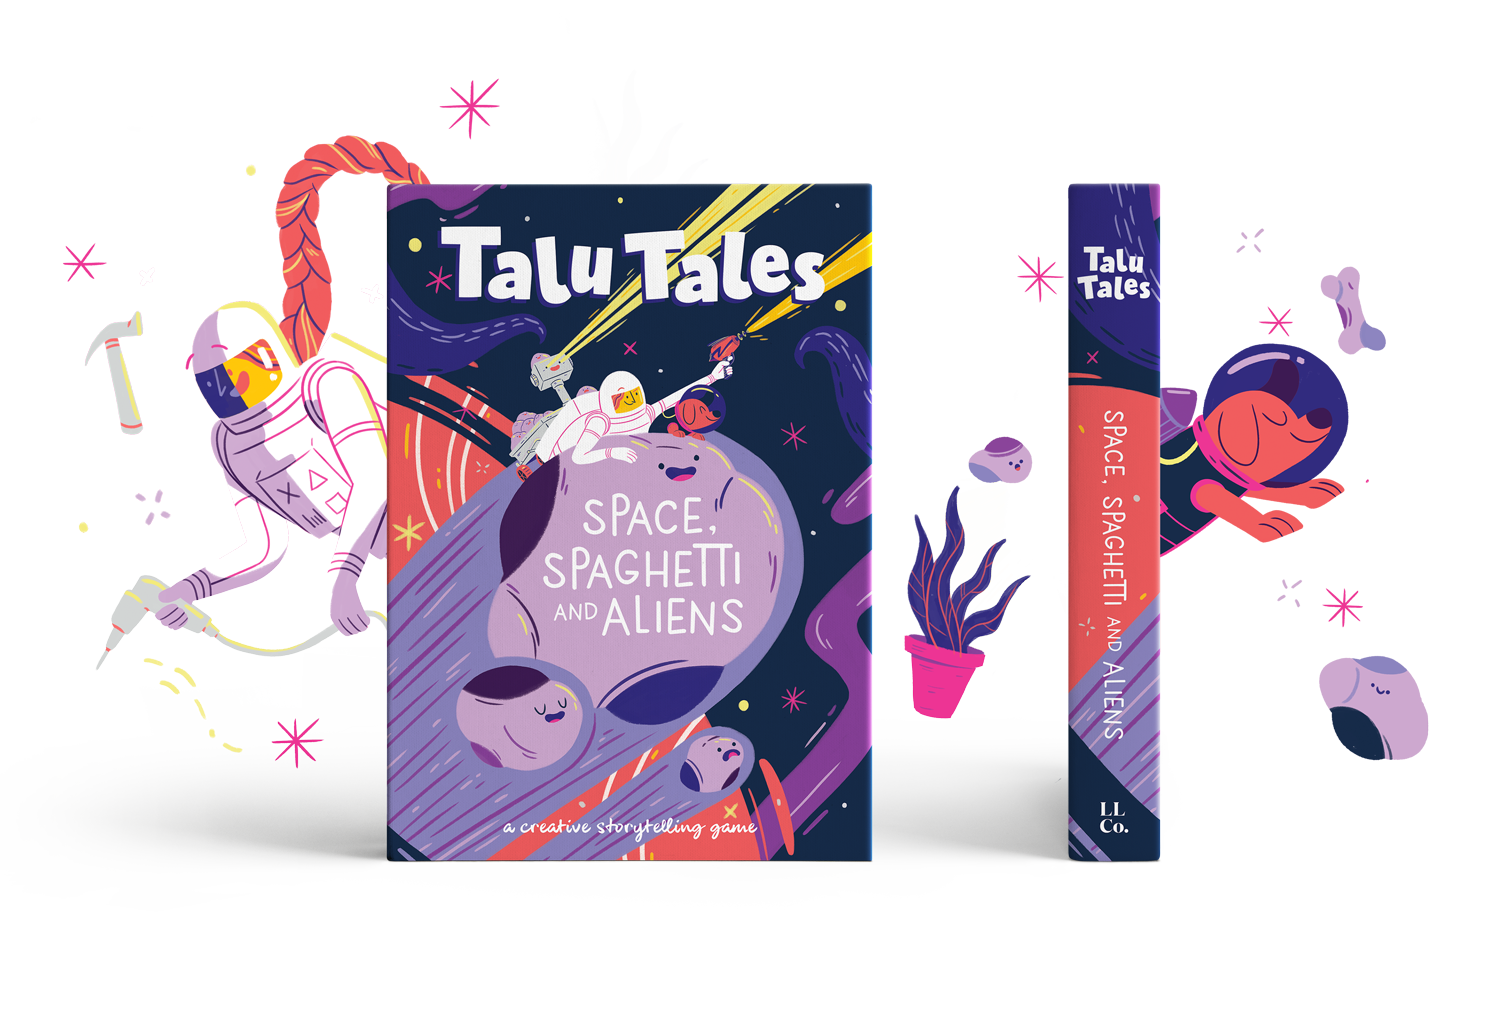 - Calling all Space lovers!This intergalactic themed story pack, Space, Spaghetti and Aliens is overflowing with cheeky aliens, exploding stars, werewolves, space whales, cheese moons, hungry black holes, singing meteors and Theo. The slobbery space dog.